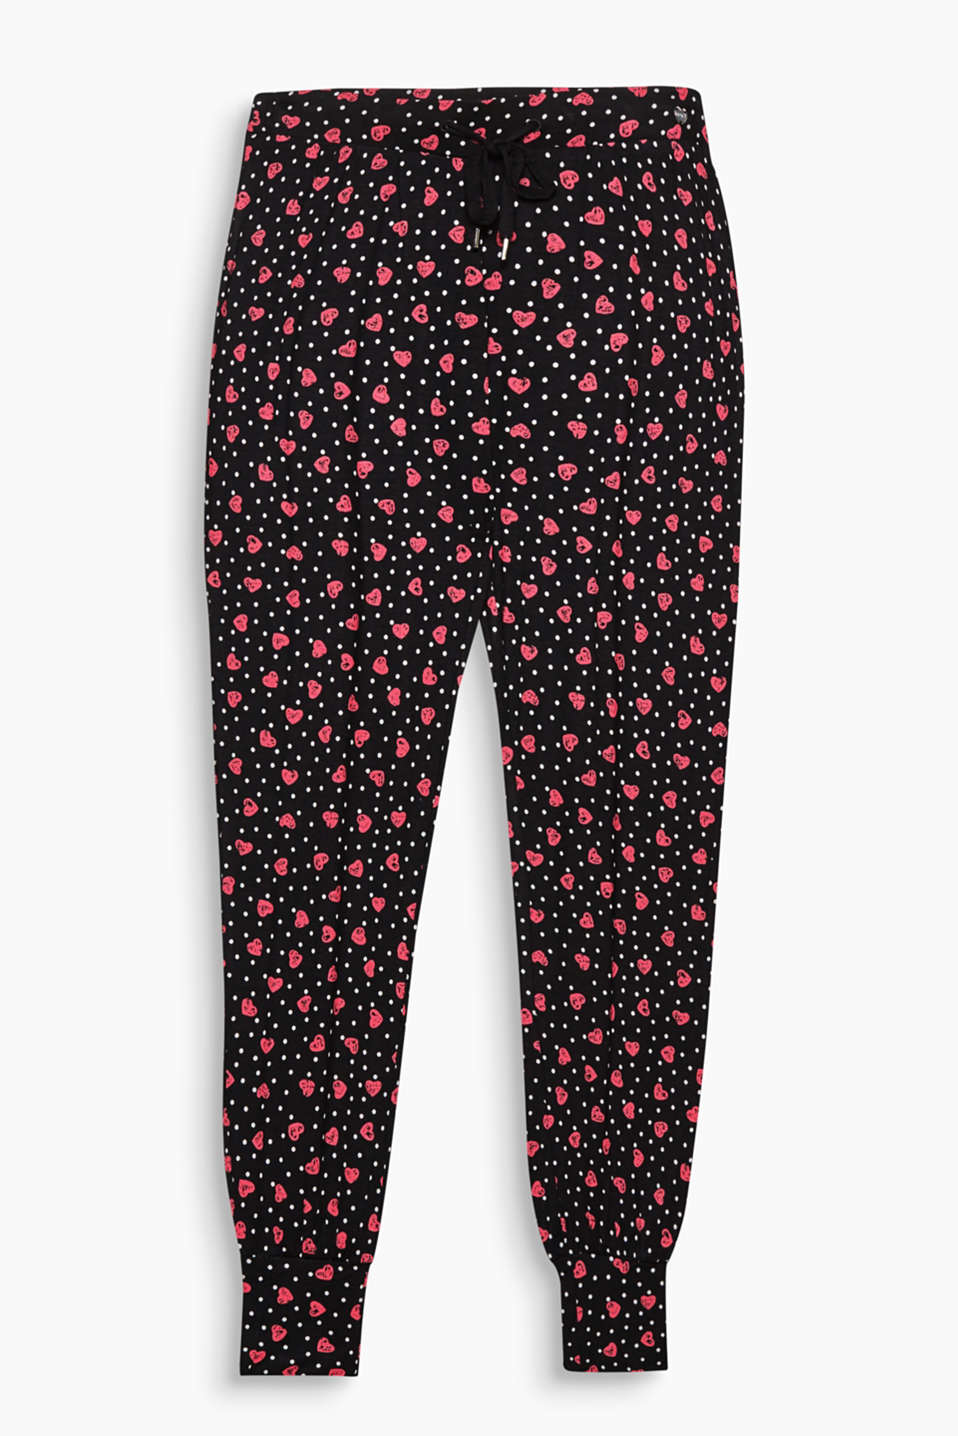 These tracksuit-style bottoms in stretch jersey + a decorative heart and polka dot print are especially soft and lightweight!